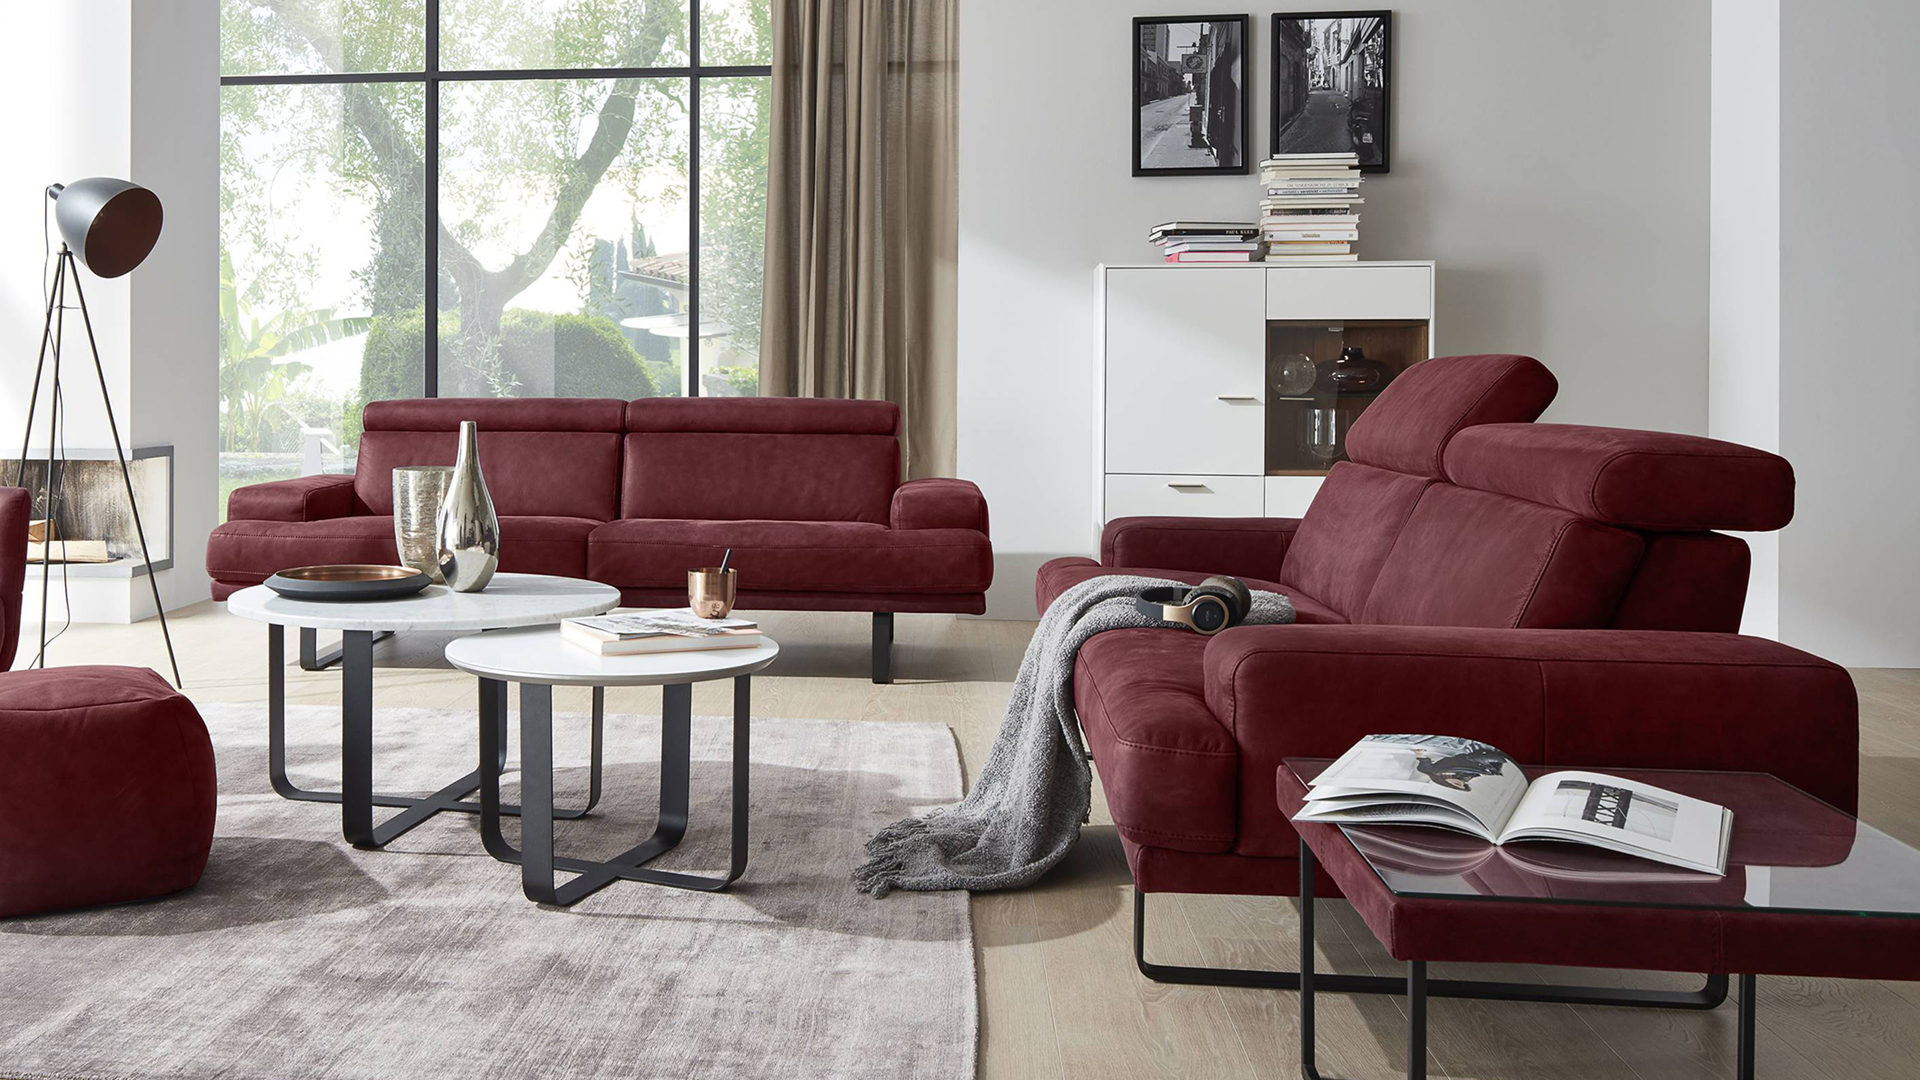 mobel bernskotter mulheim mobel a z sofas couches polstergarnituren interliving interliving sofa serie 4152 ledergarnitur dunkelrotes nubukleder